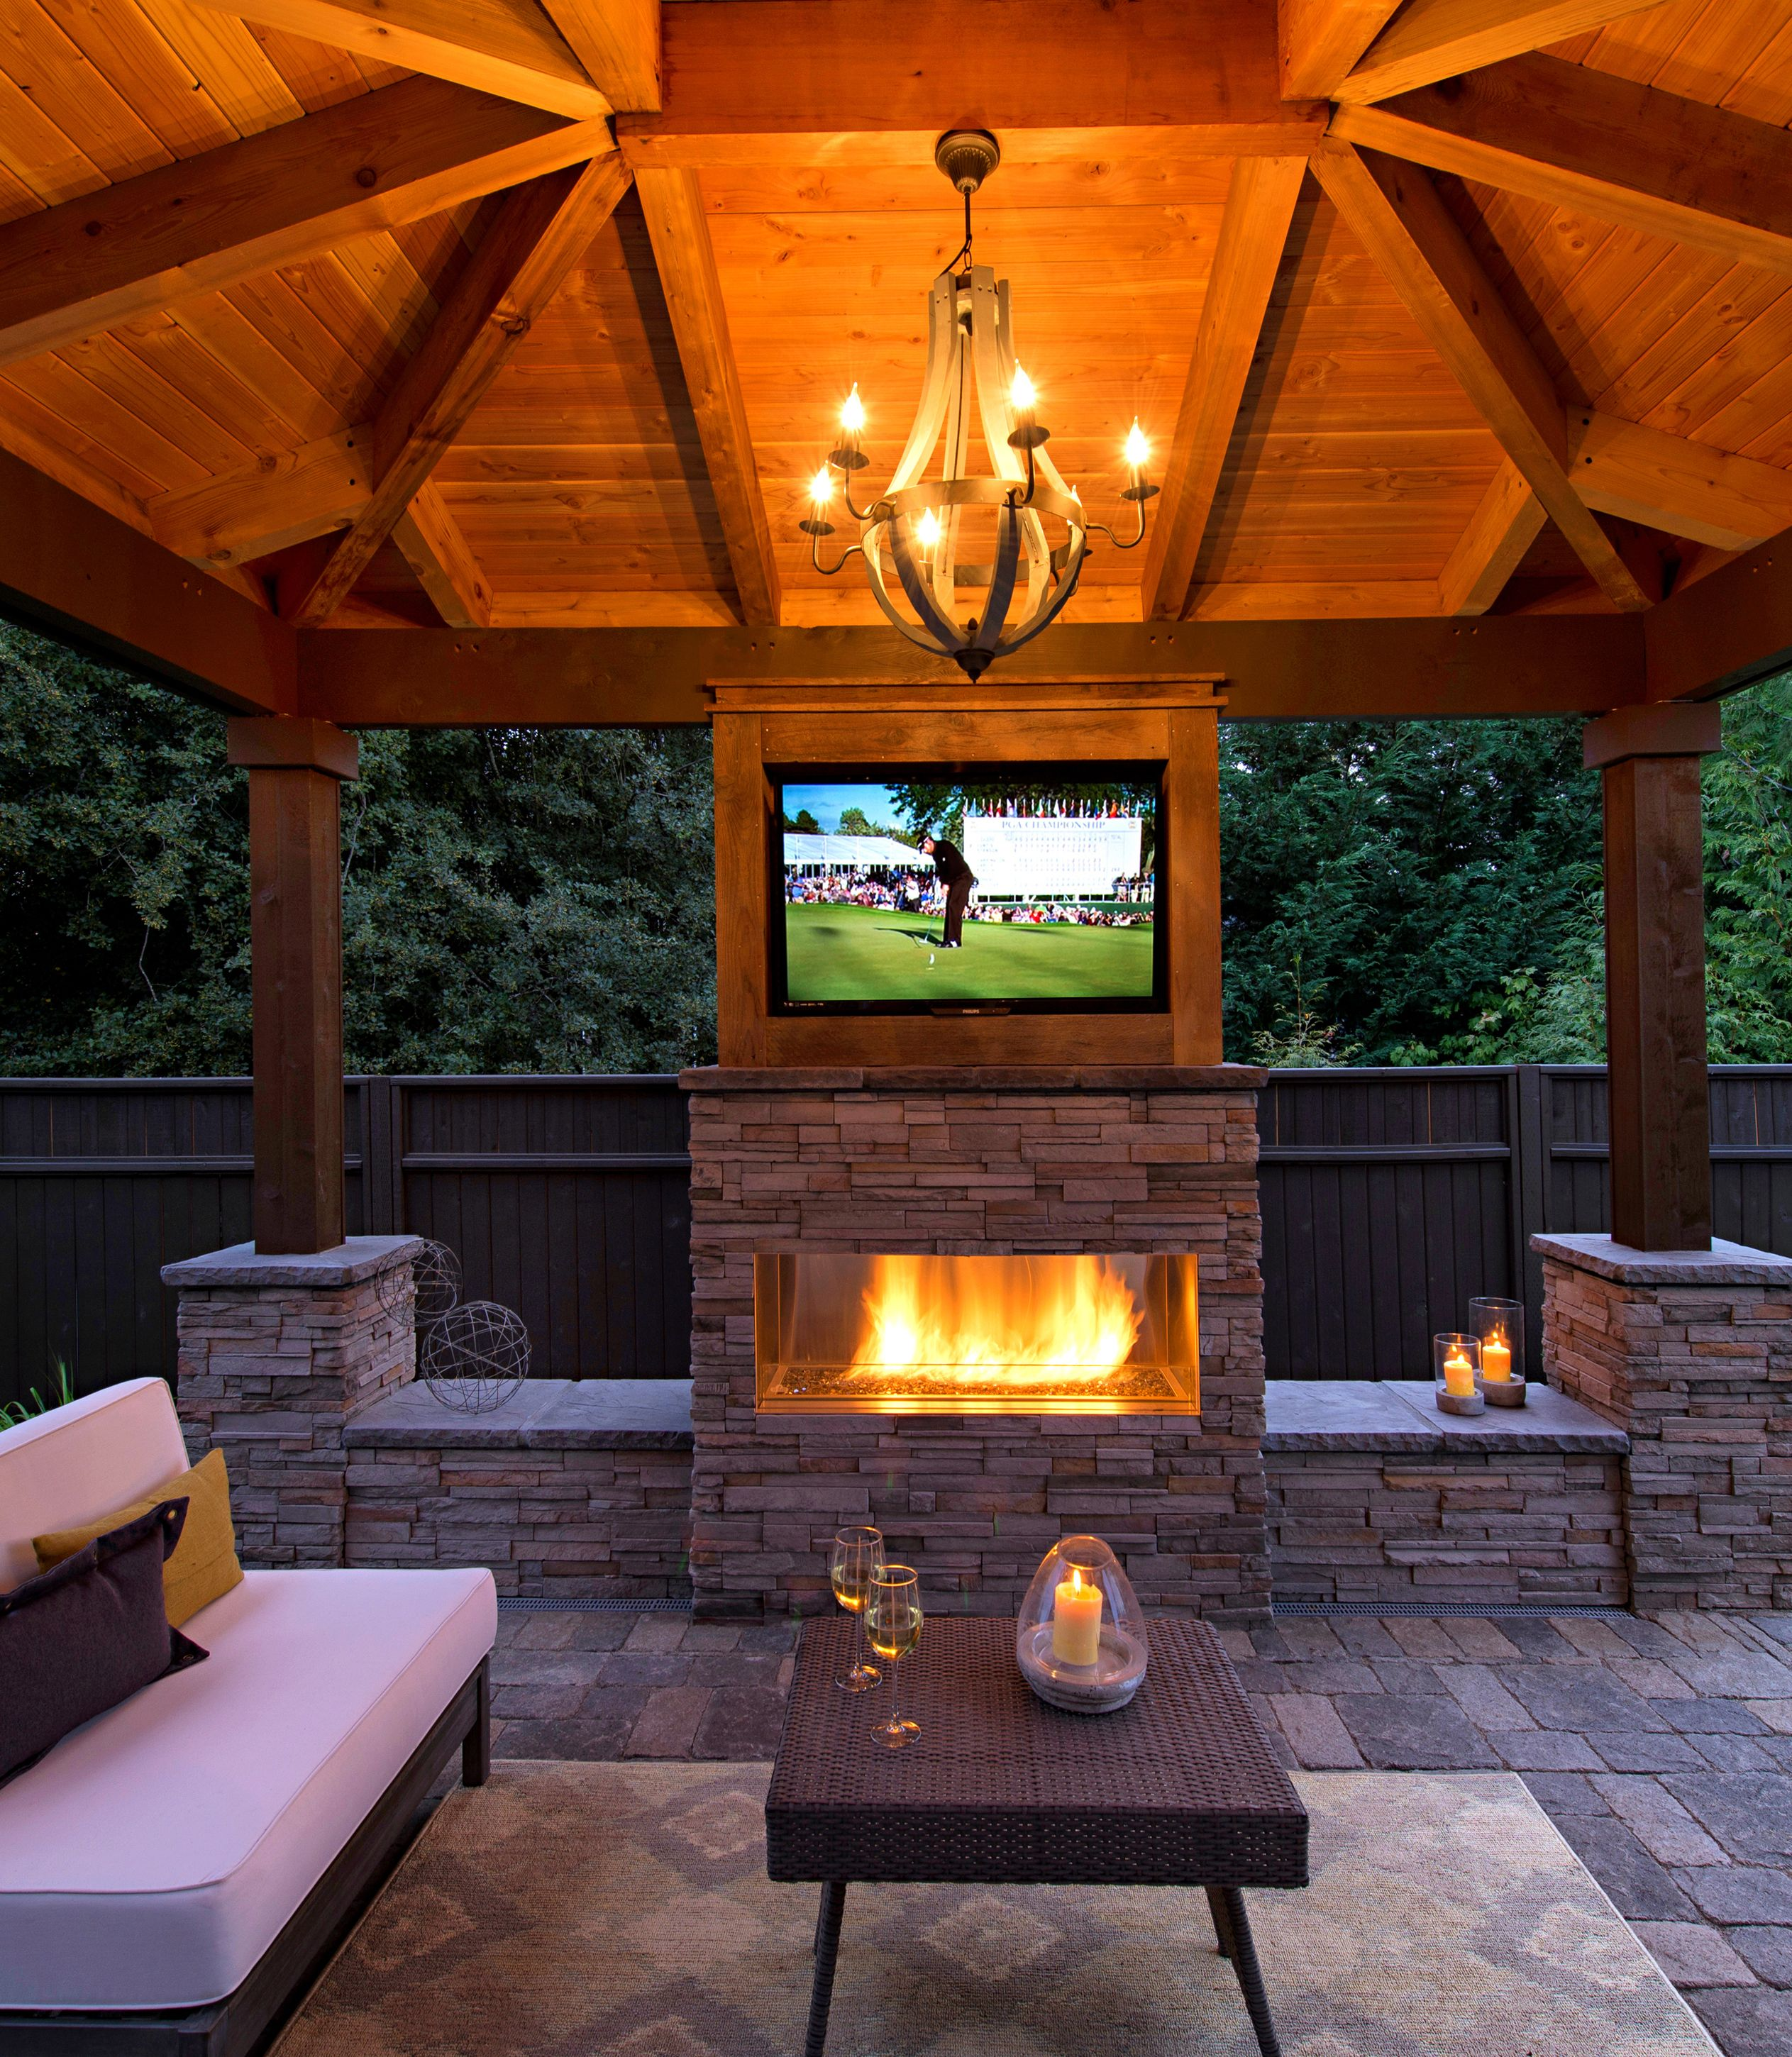 Modern Or Rustic Front Landscape Design: Rustic-Modern Fireplace With Seat Walls Http://www